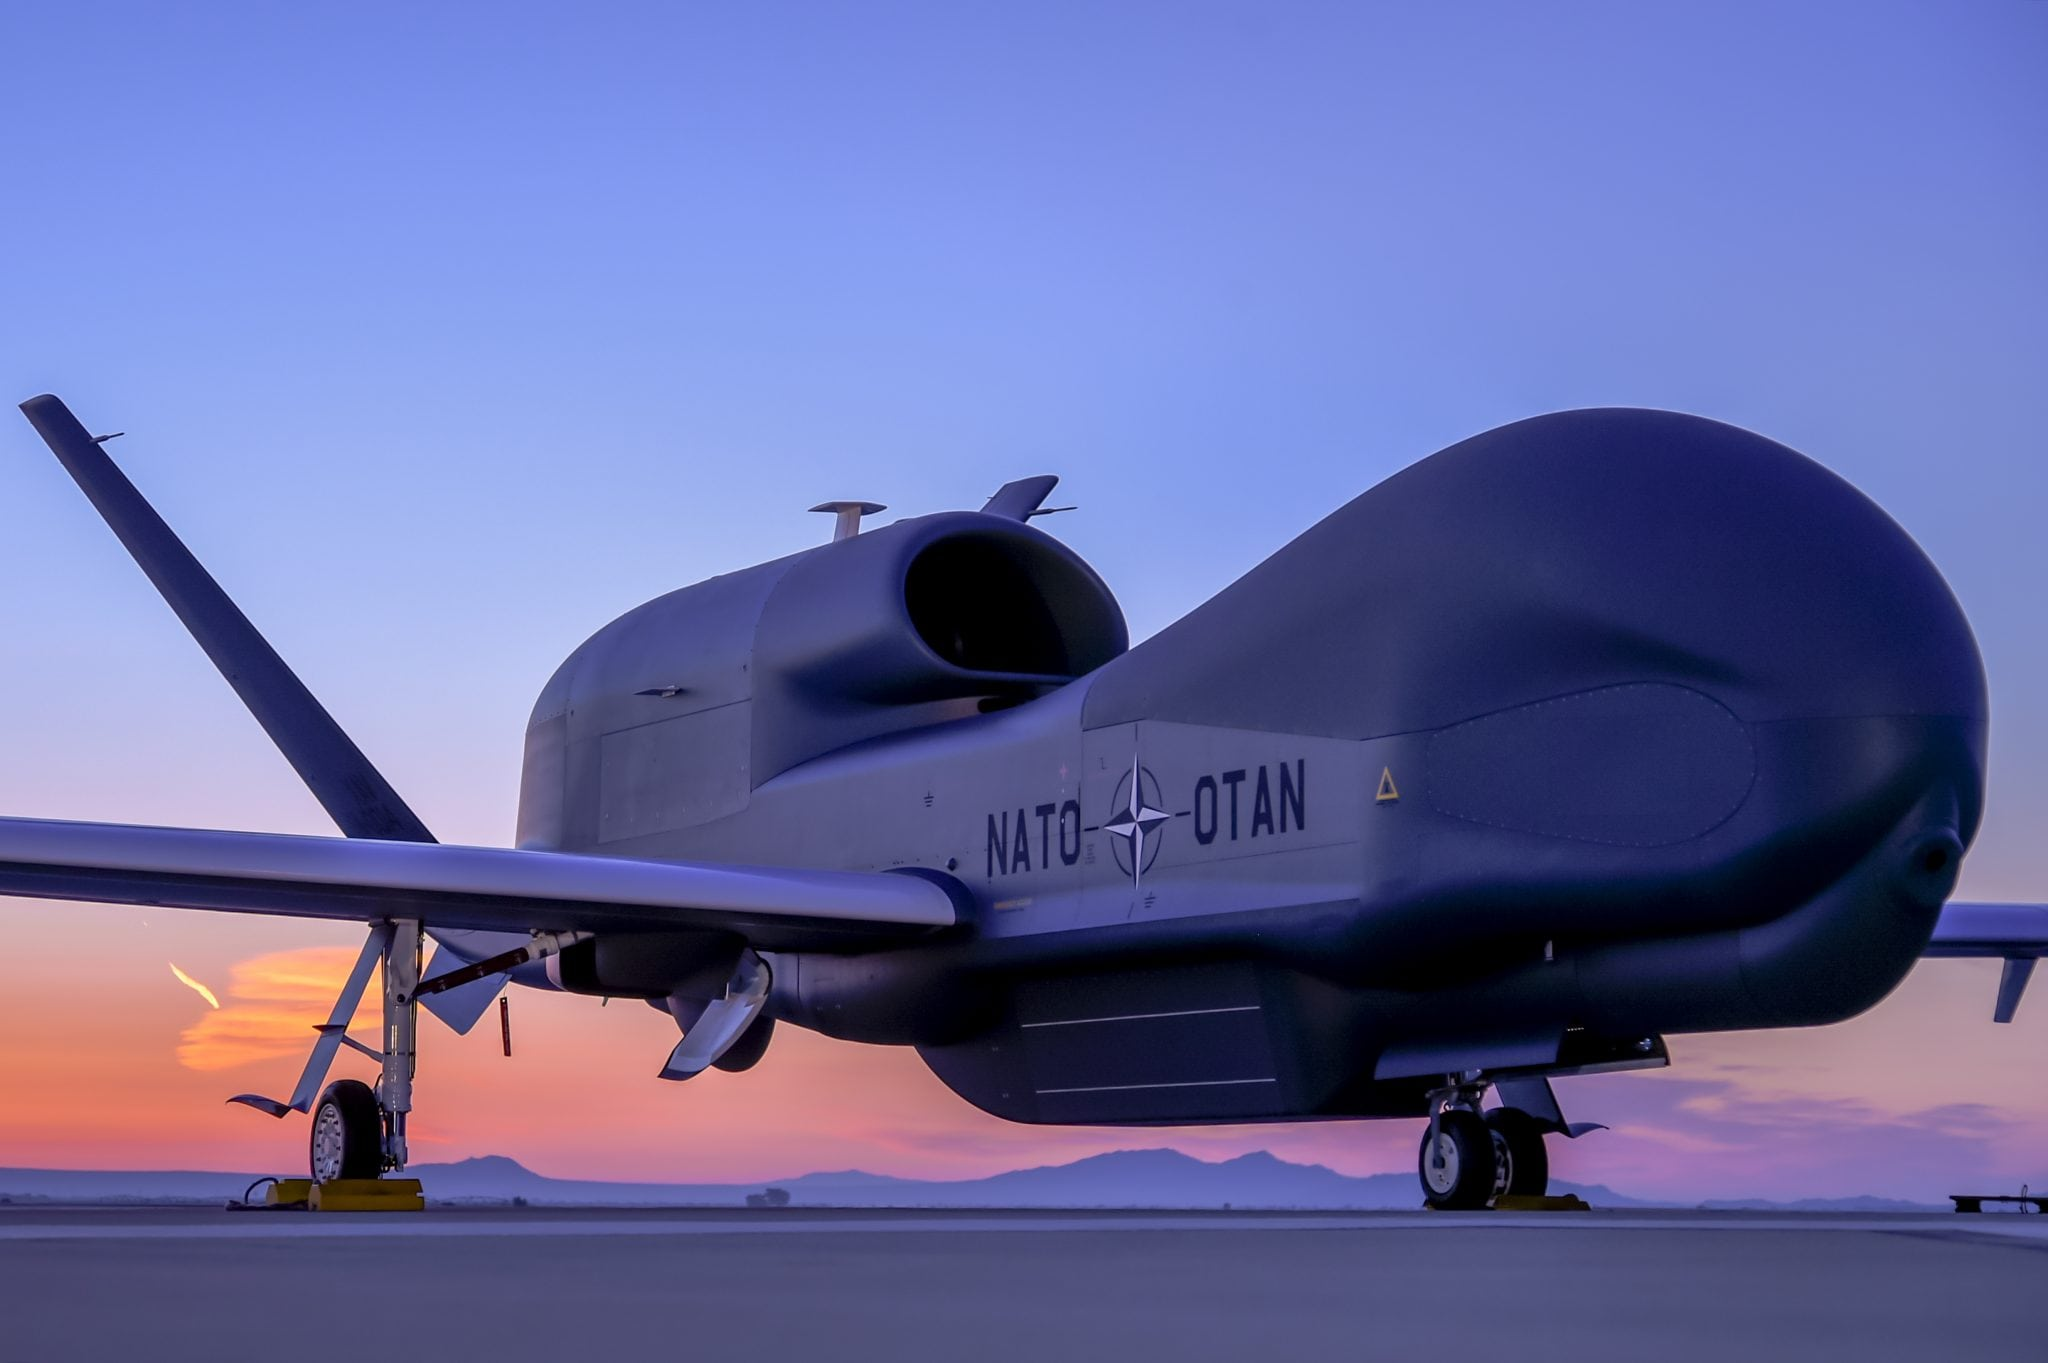 The first NATO Alliance Ground Surveillance (AGS) aircraft